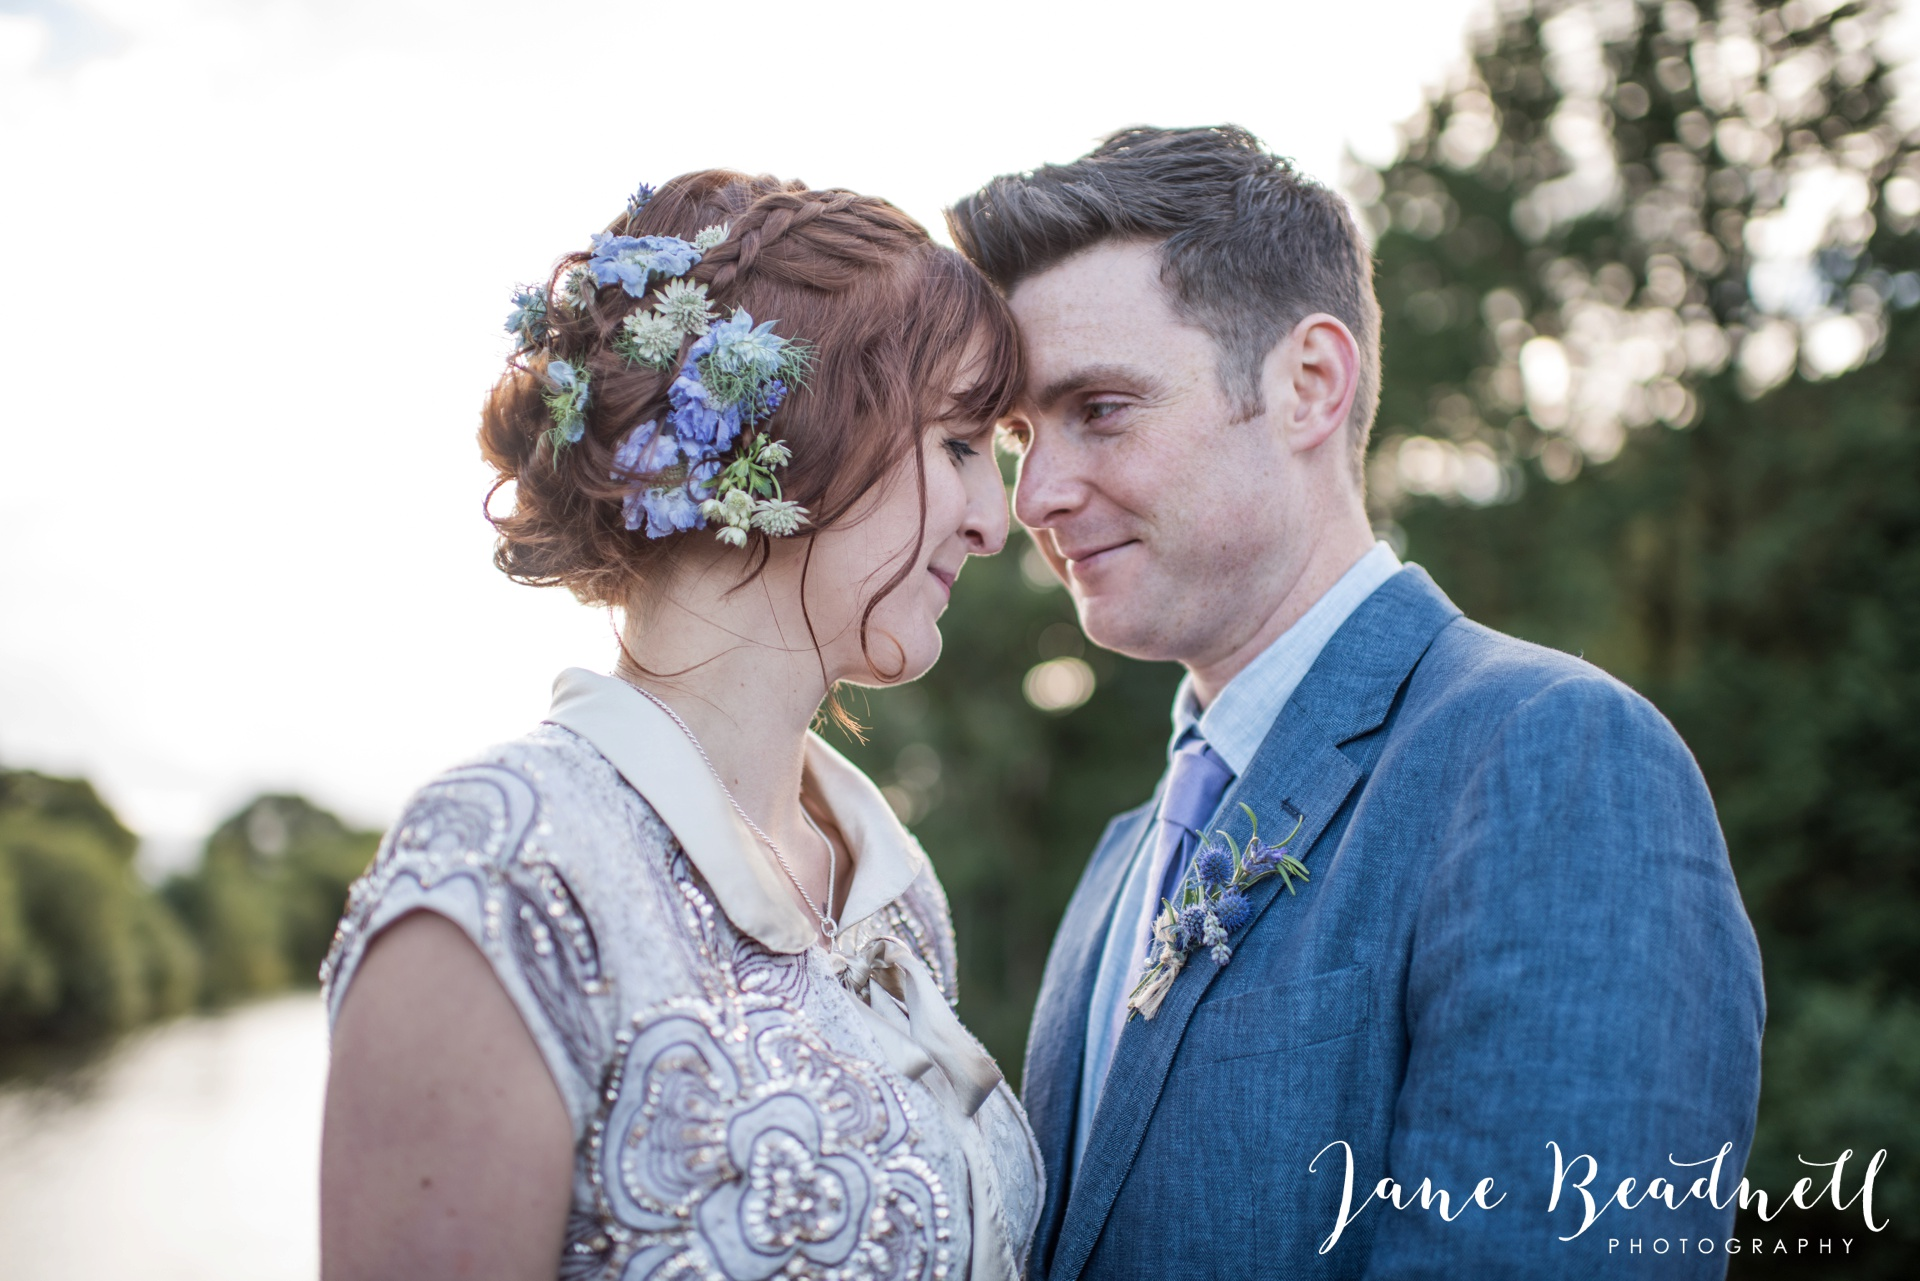 Jane Beadnell fine art wedding photographer Lake Ullswater Lake District_0050